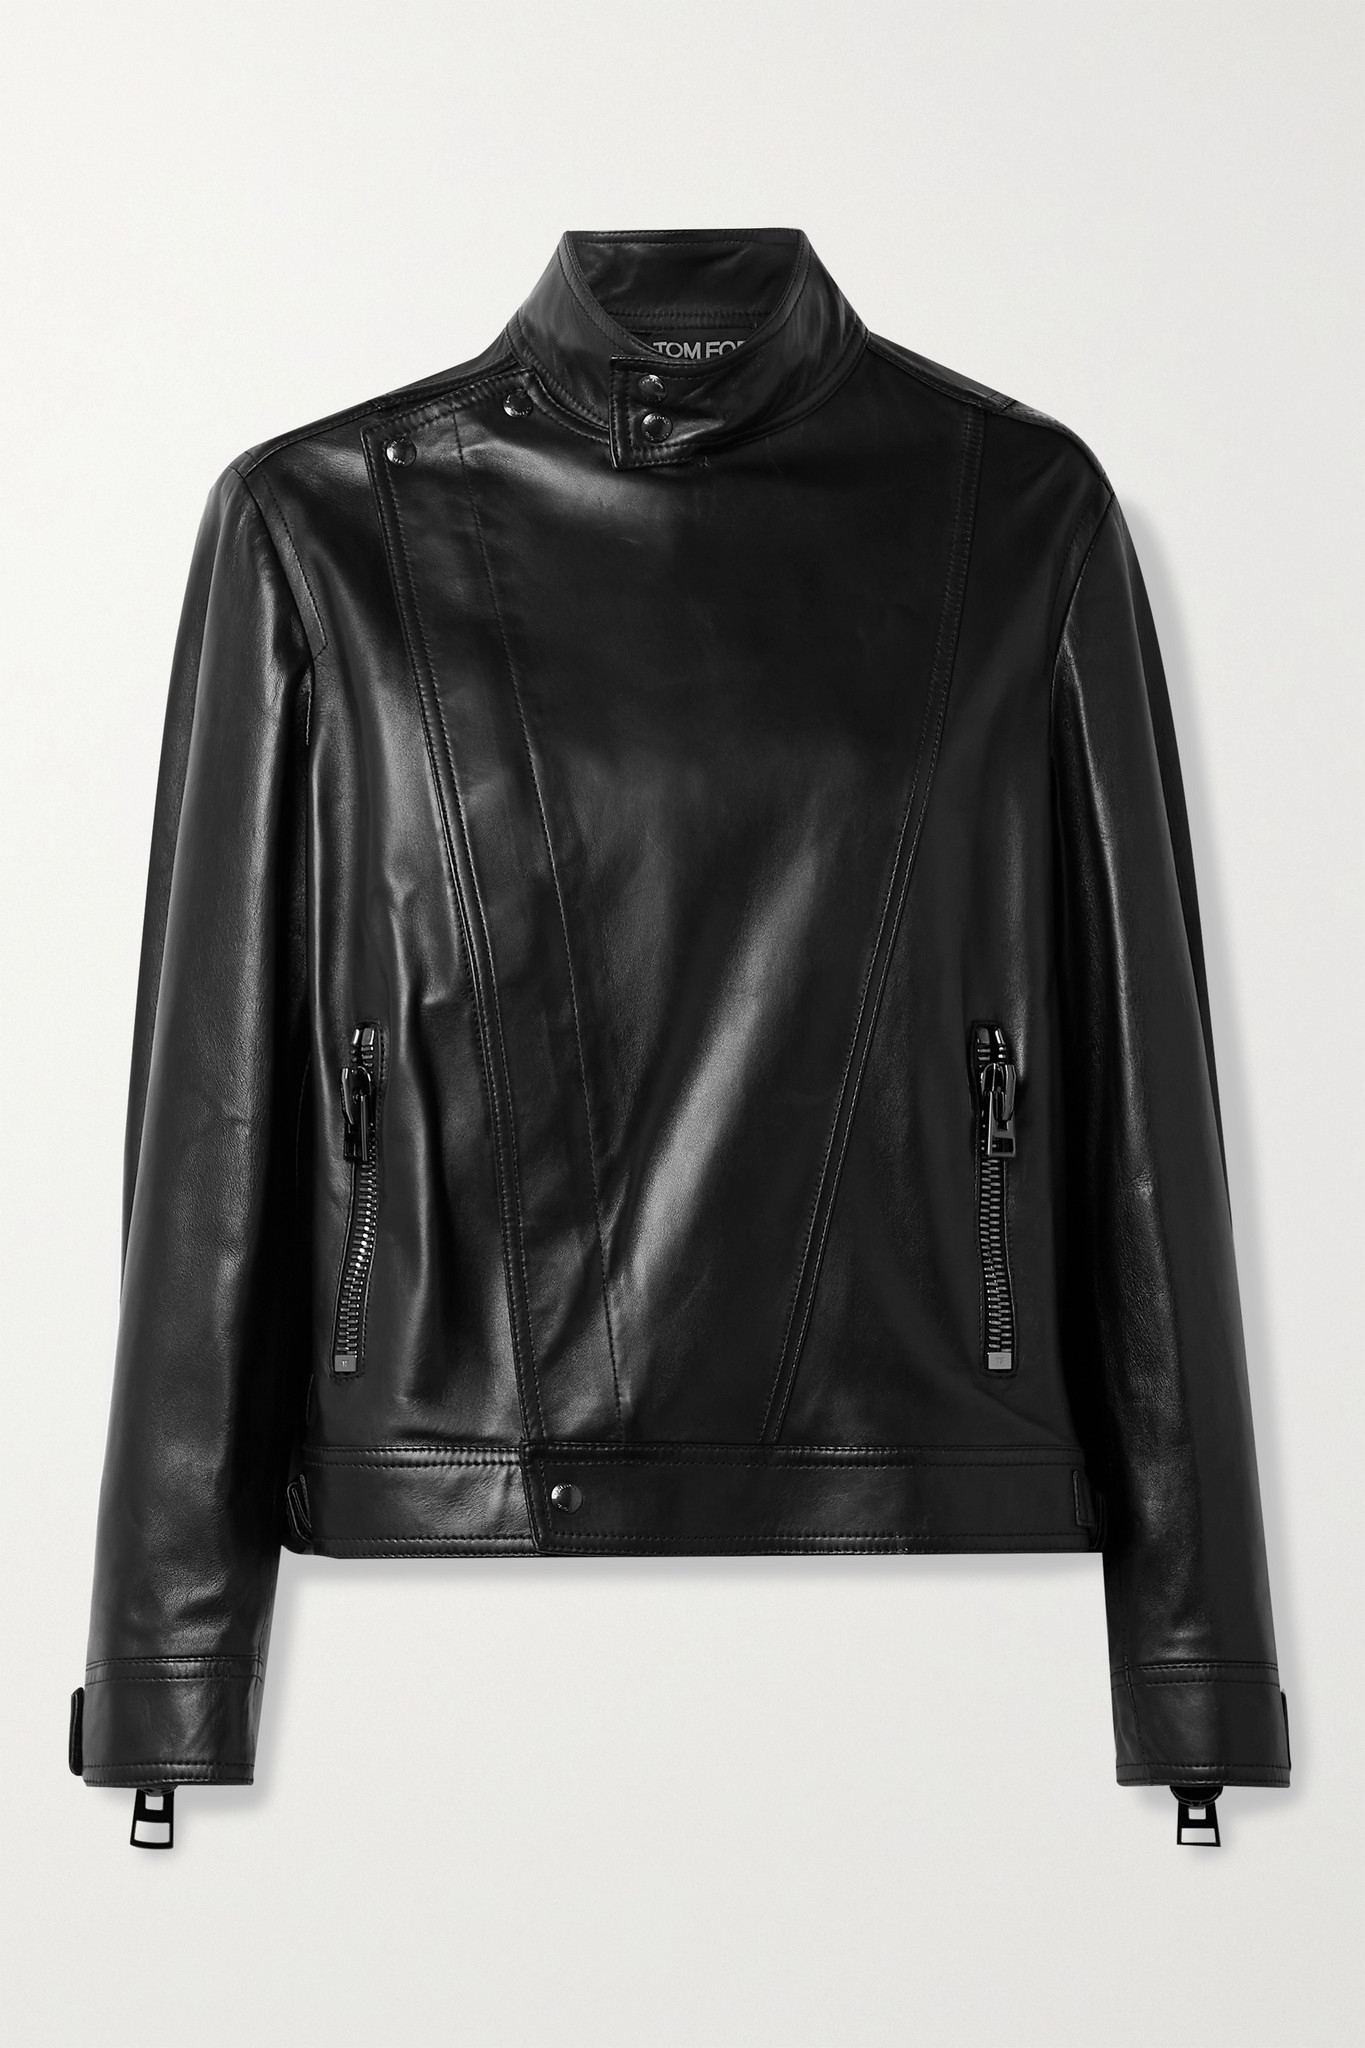 TOM FORD - Leather Biker Jacket - Black - IT40